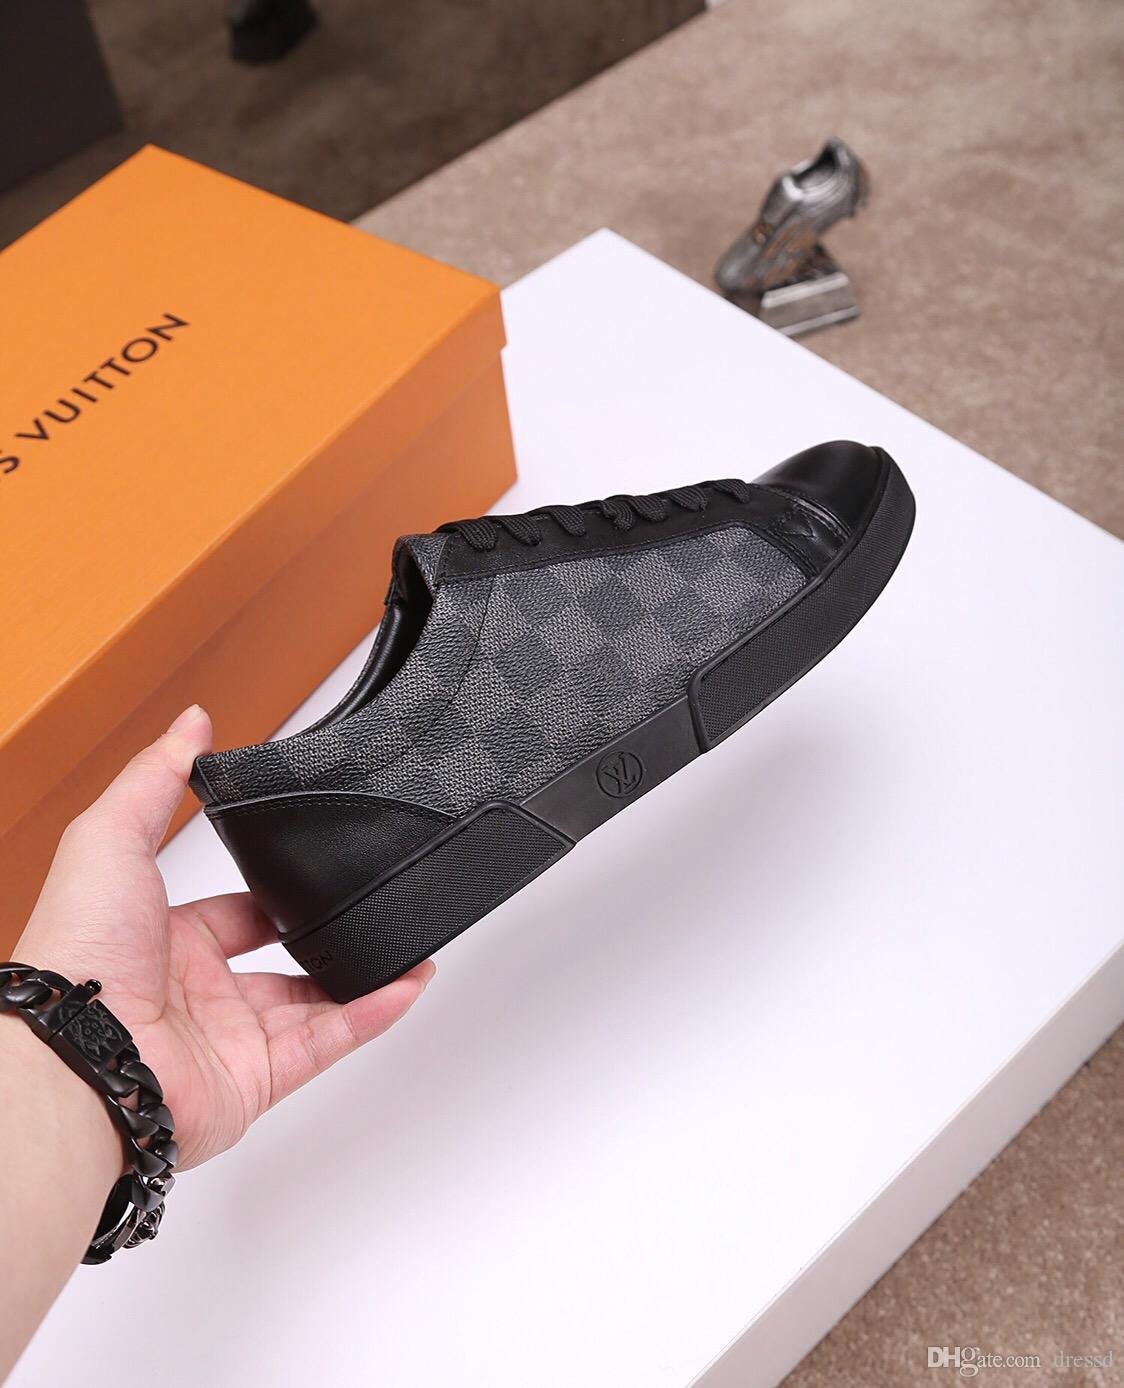 2019 Velvet black men's and women's boutique shoes beautiful thick-soled casual sneakers hot sale leather solid color dress shoes 35-45